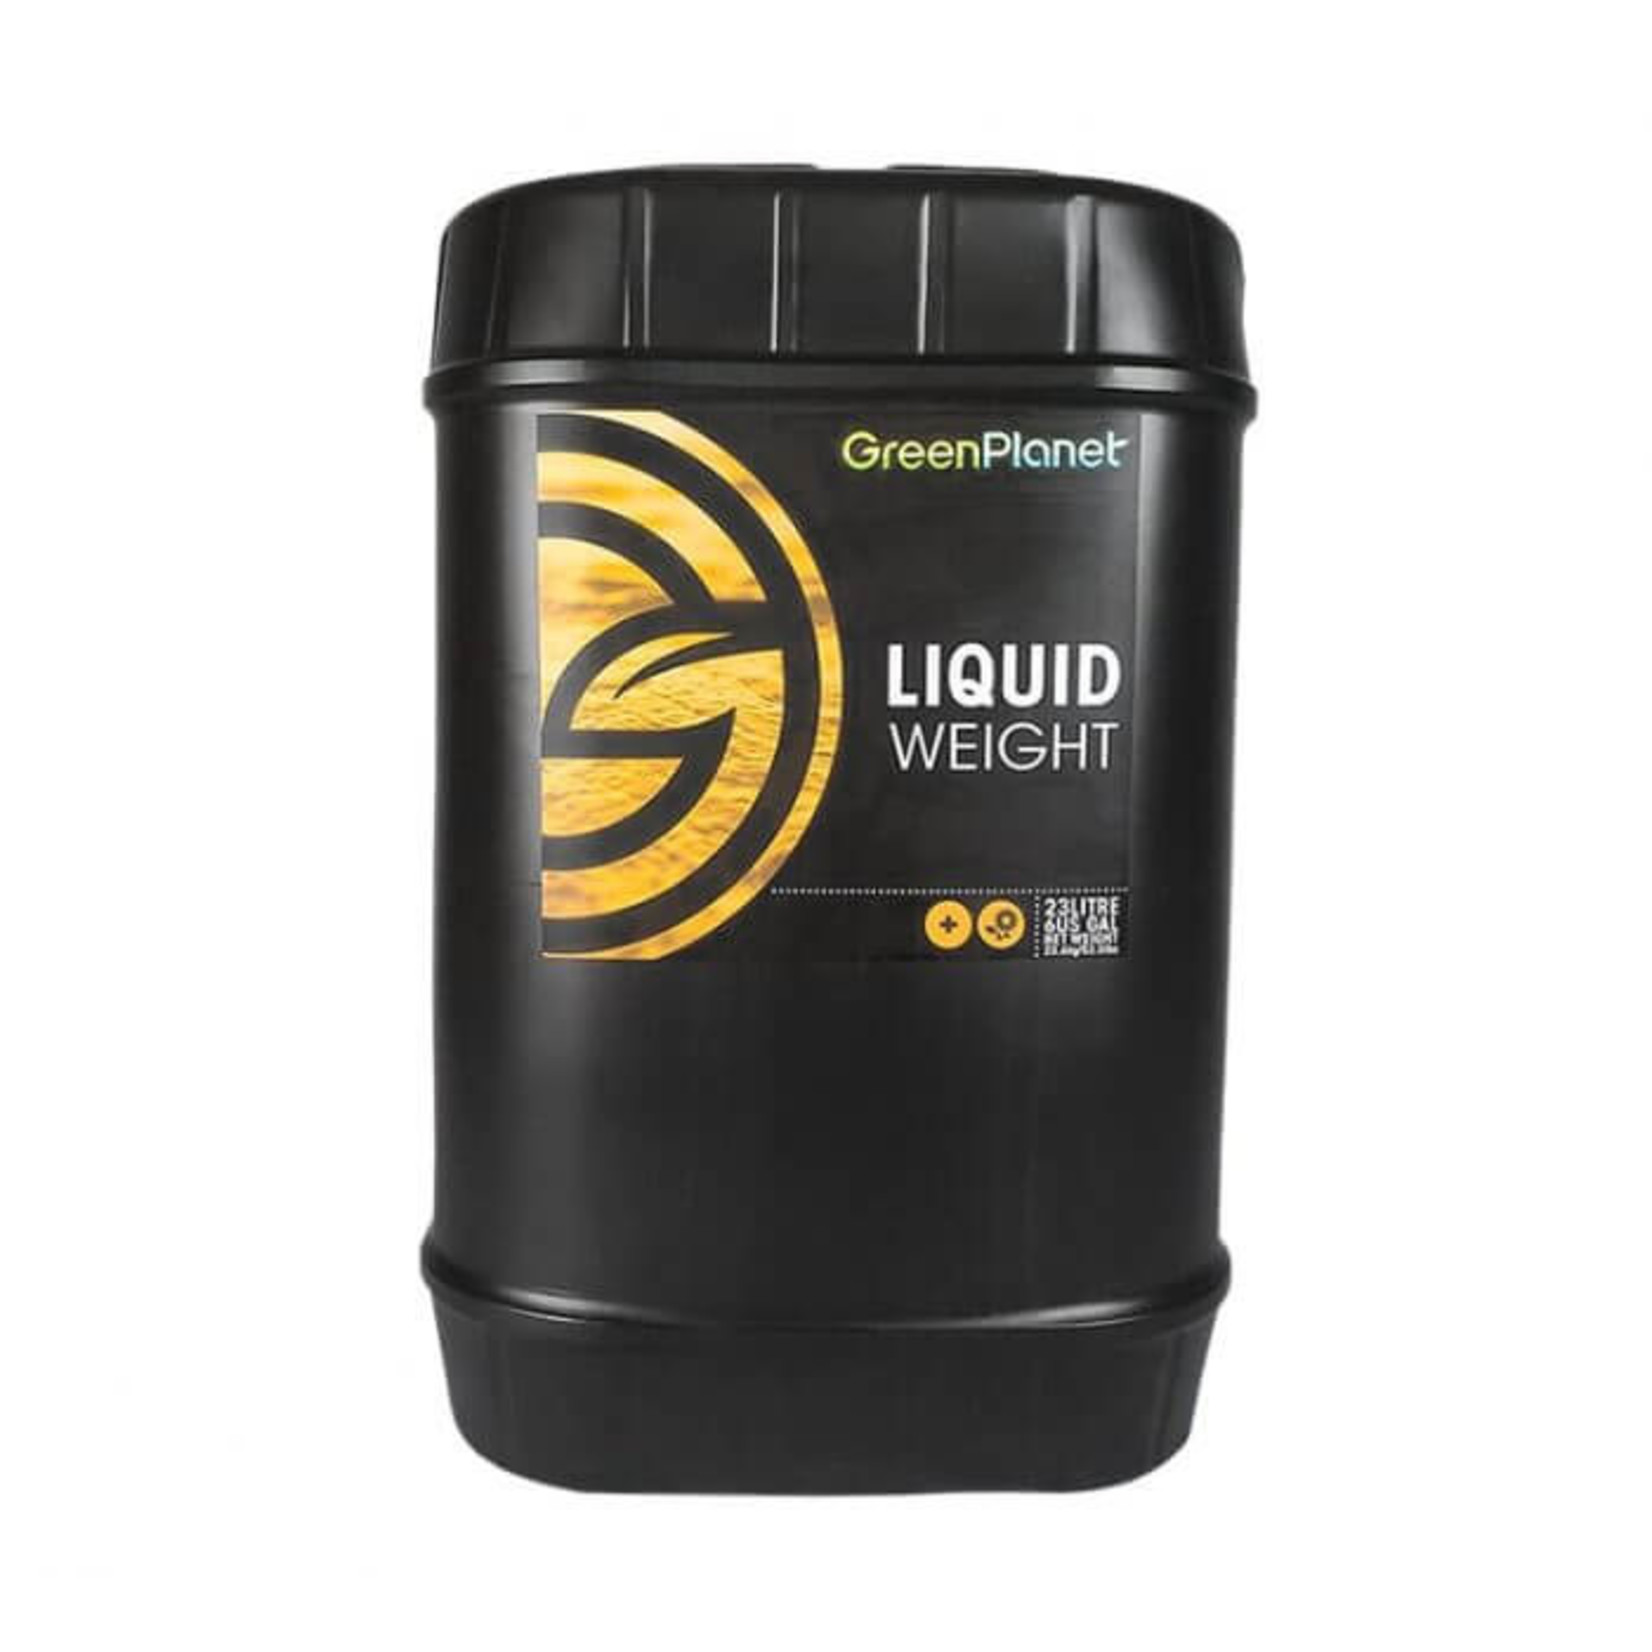 Green Planet GreenPlanet Nutrients Liquid Weight